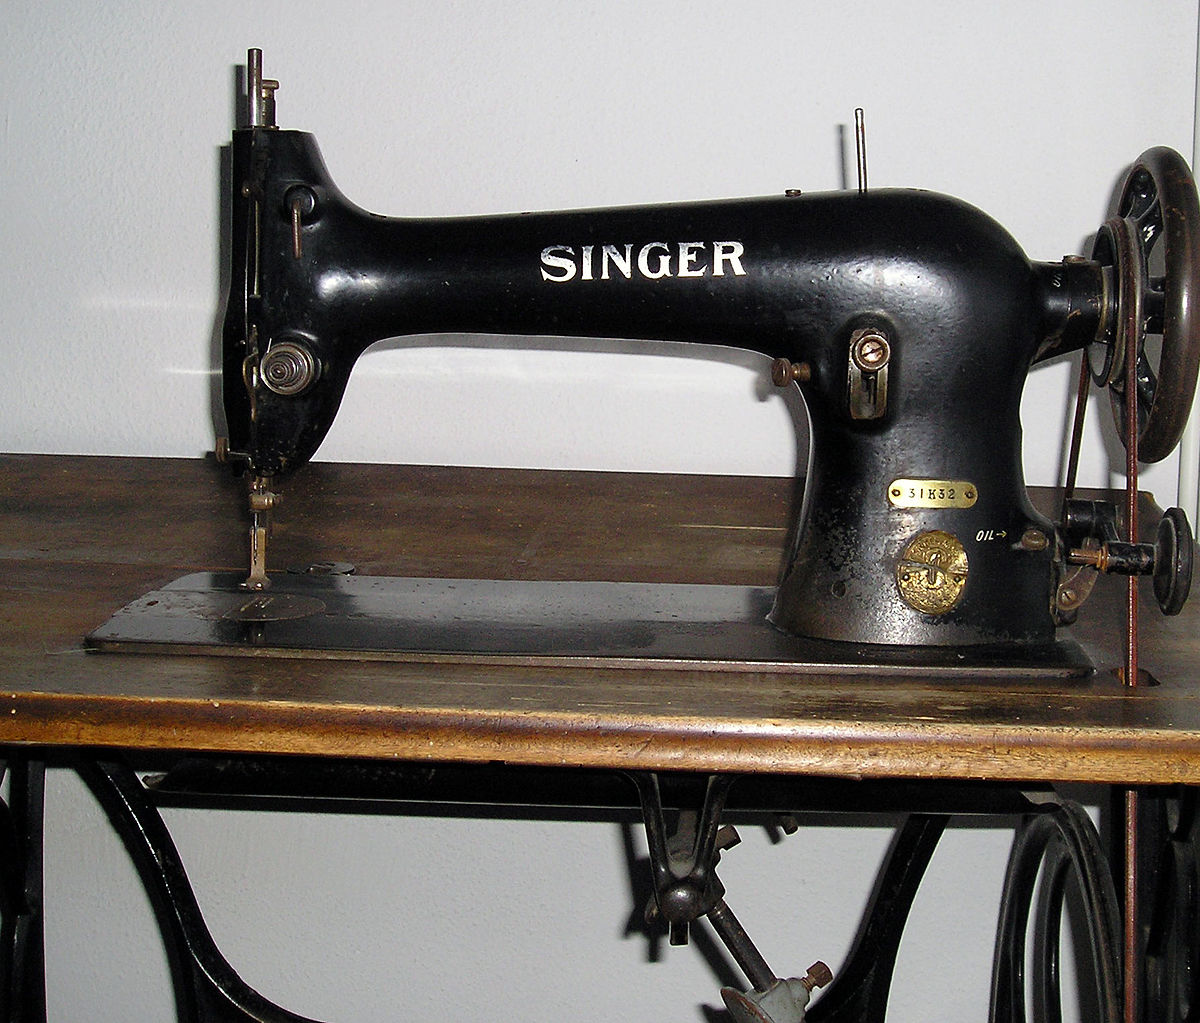 sewing machine simple english wikipedia the free. Black Bedroom Furniture Sets. Home Design Ideas